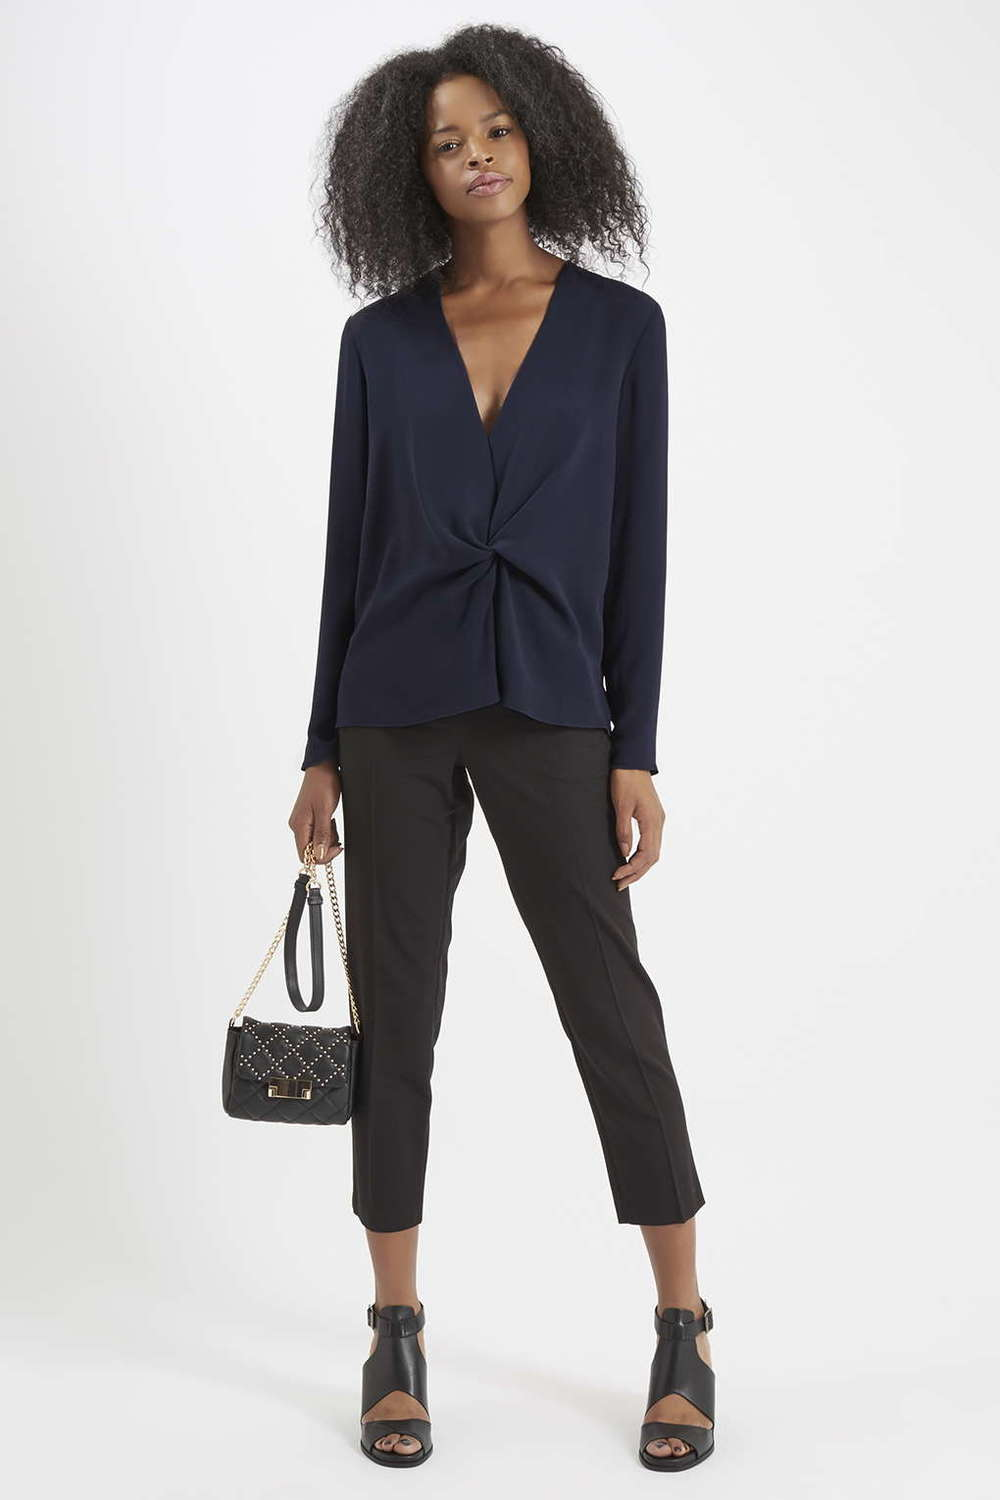 Tuck Drape Front Blouse. (Polyester) Available in forest green, navy blue. Topshop. $65.